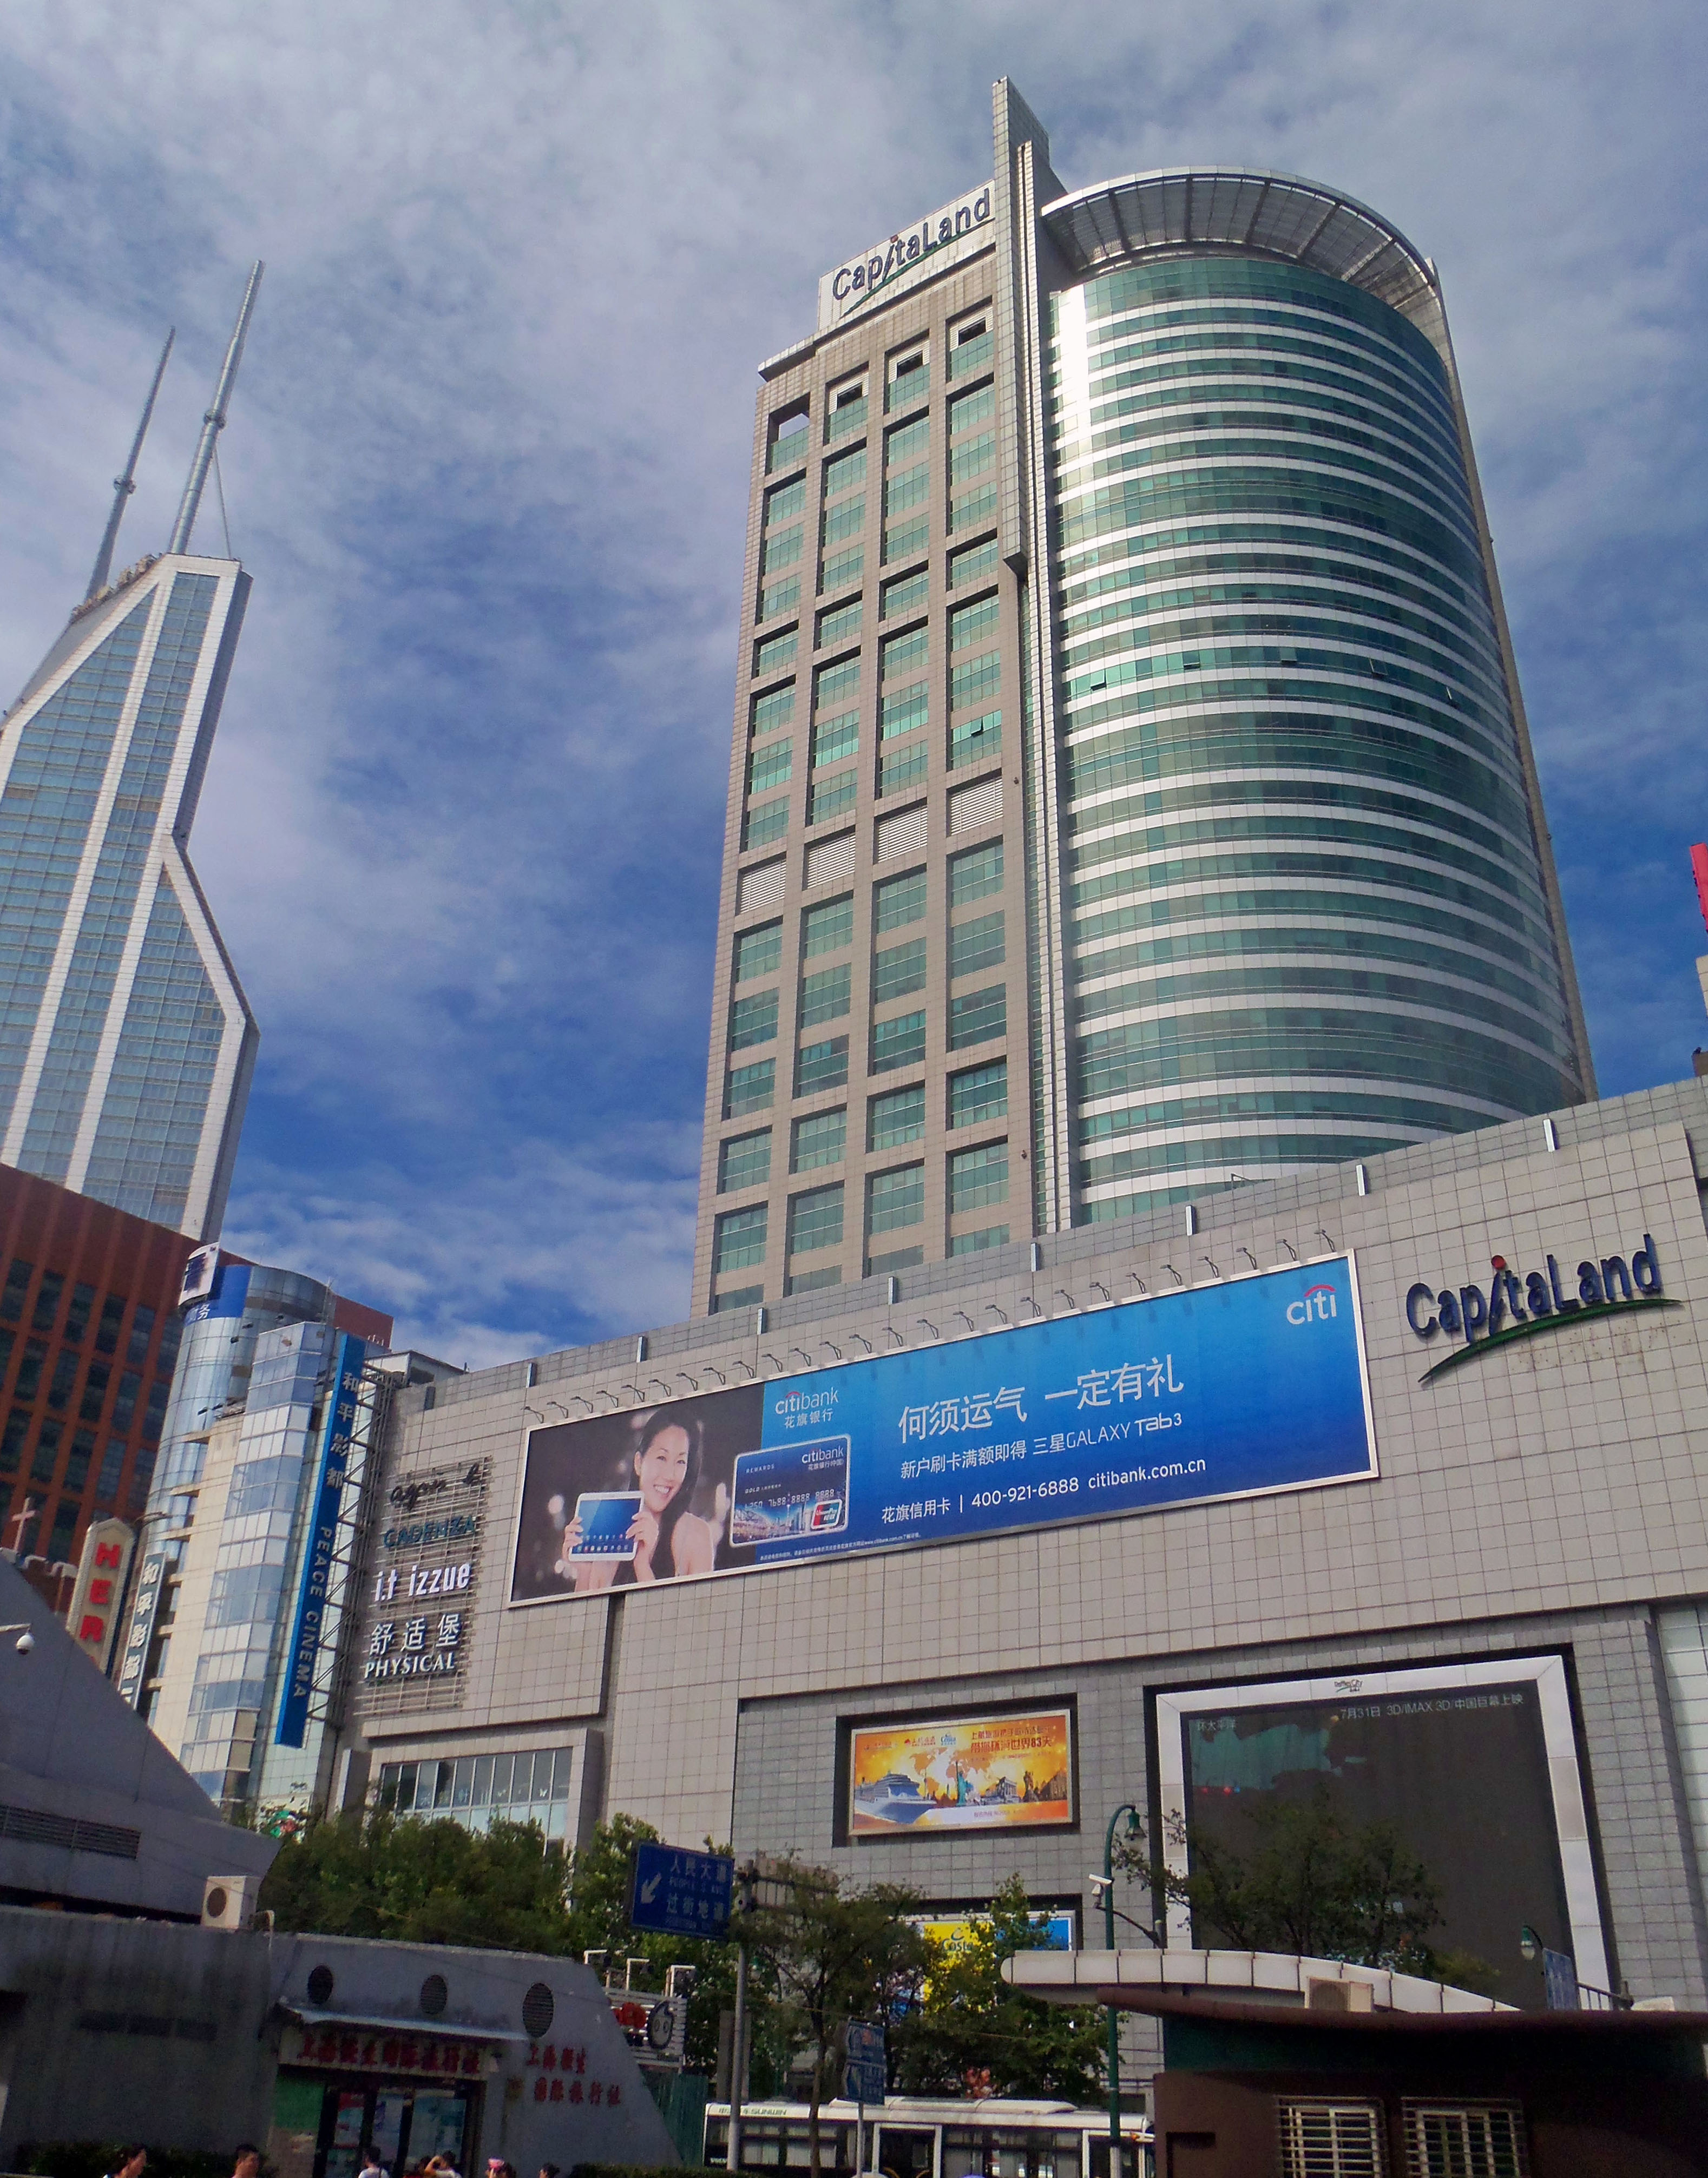 Raffles City Shanghai - Wikipedia